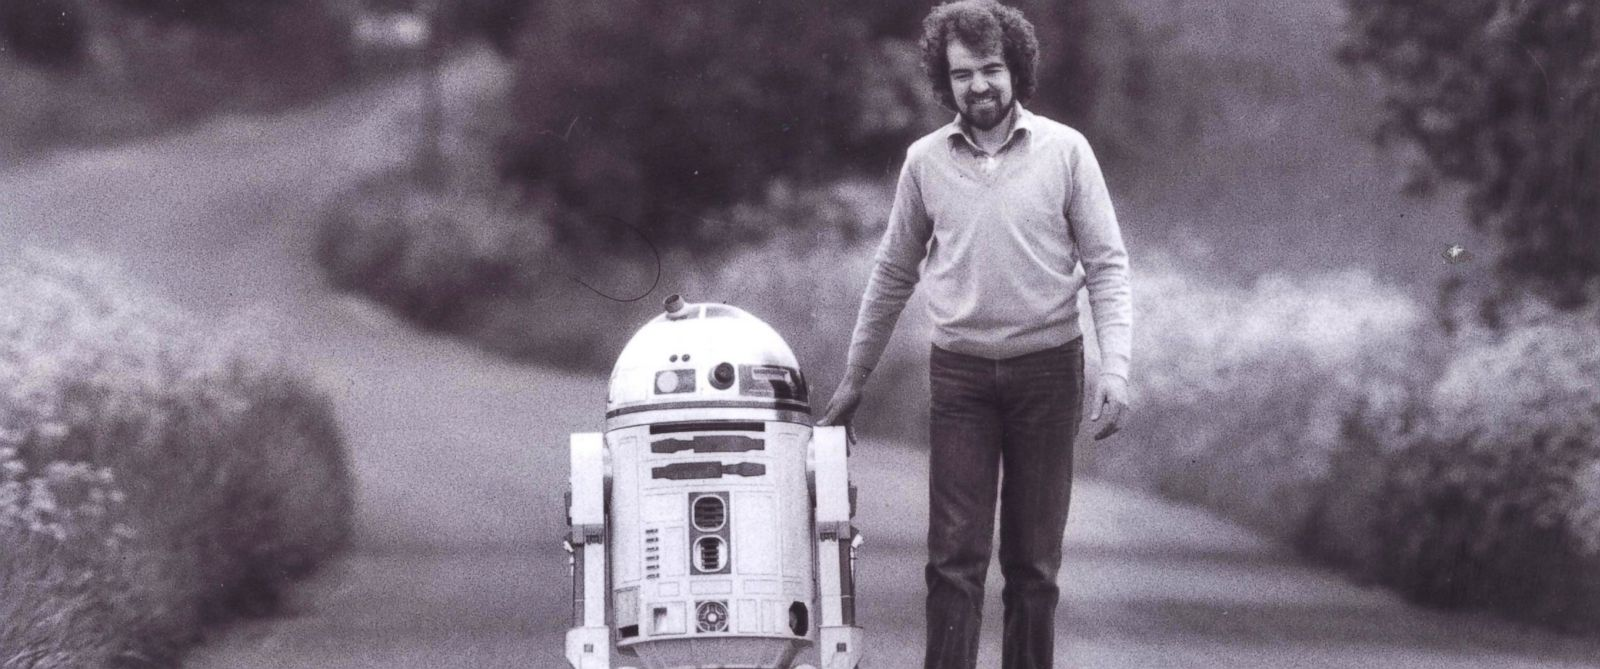 PHOTO: Tony Dyson is pictured with the robot he created, R2-D2, in this undated file photo.